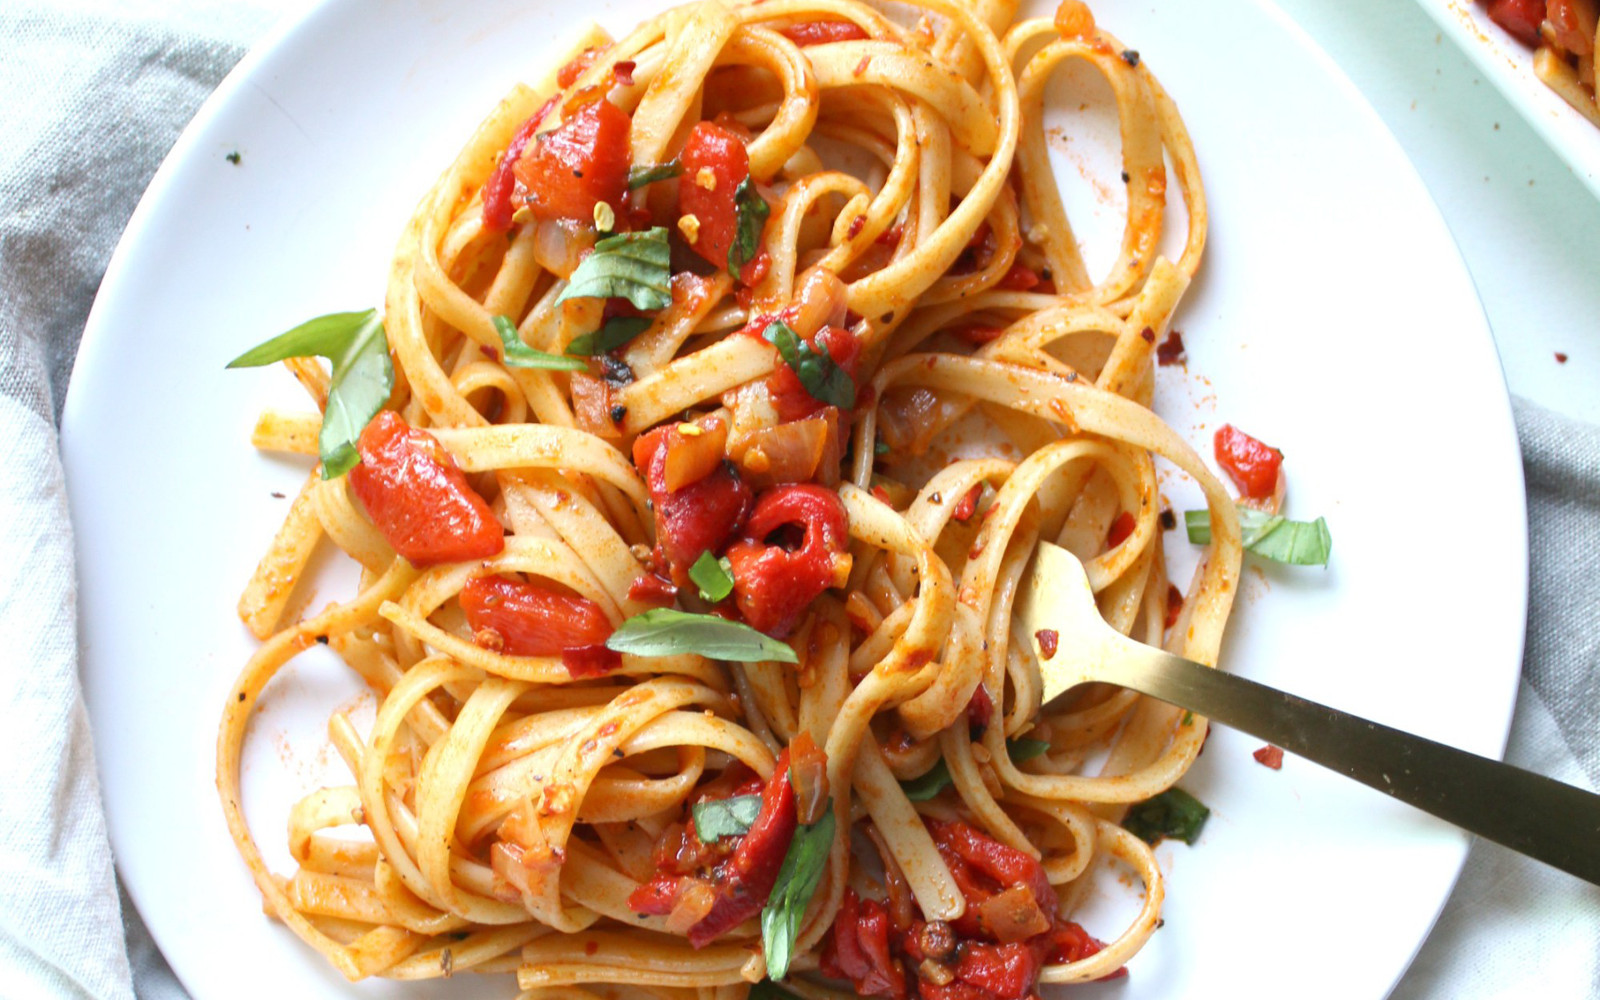 Vegan Spicy Roasted Red Pepper Fettuccine